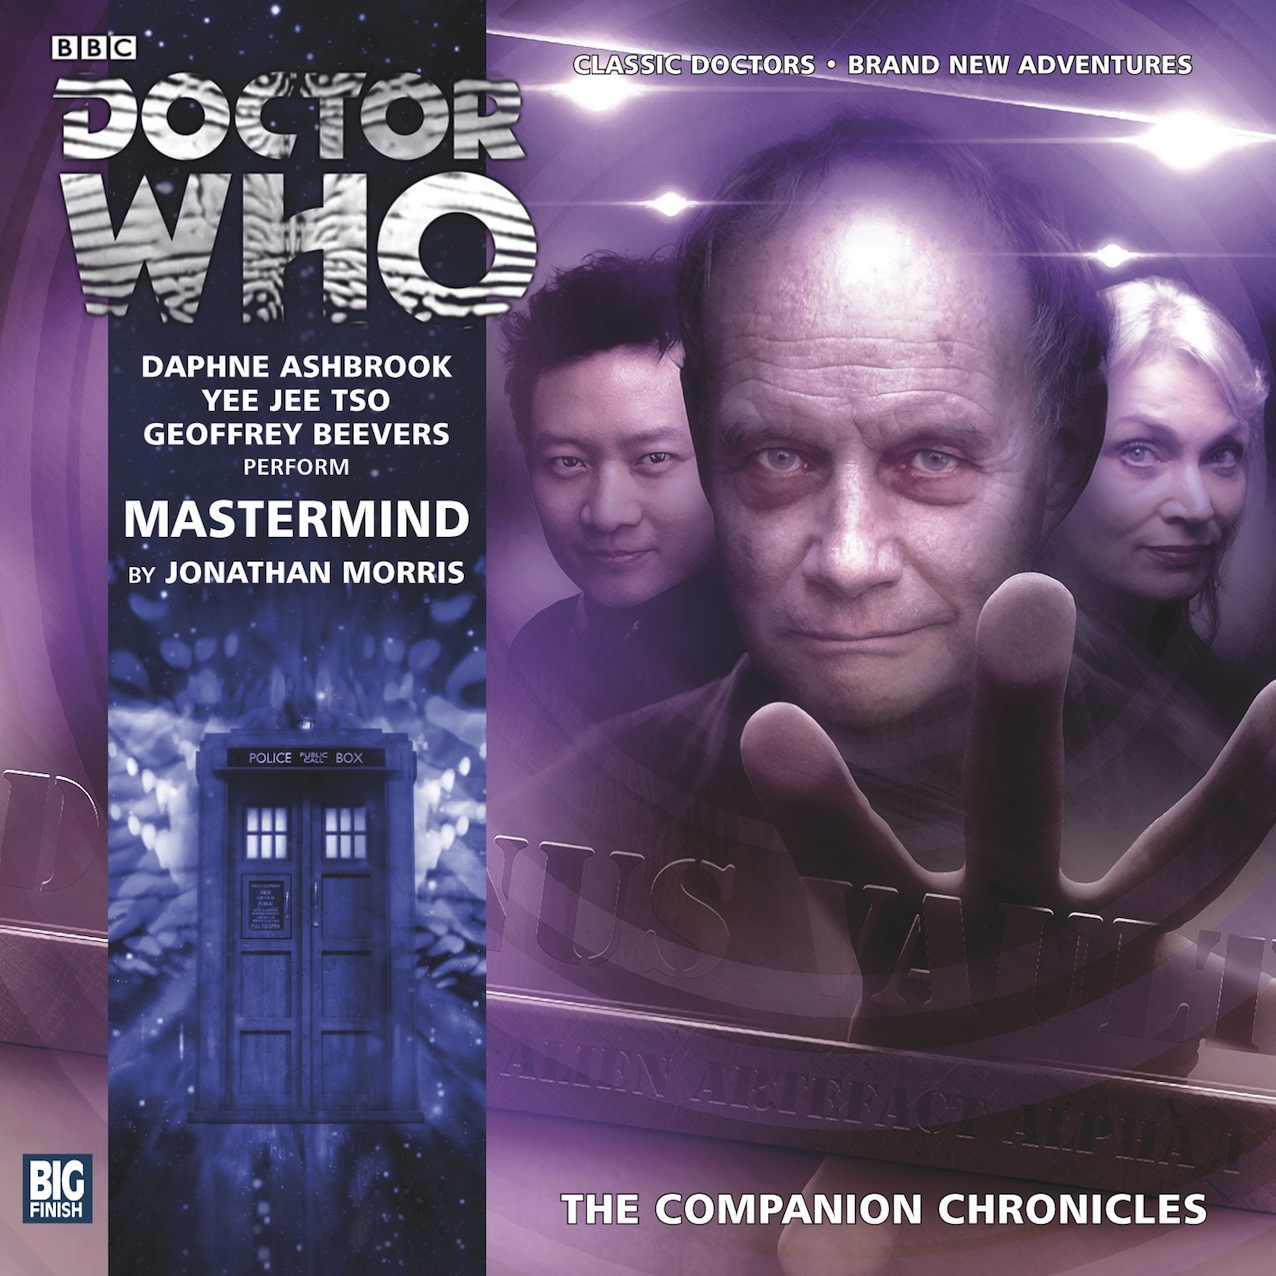 The Companion Chronicles: Mastermind (Credit: Big Finish)